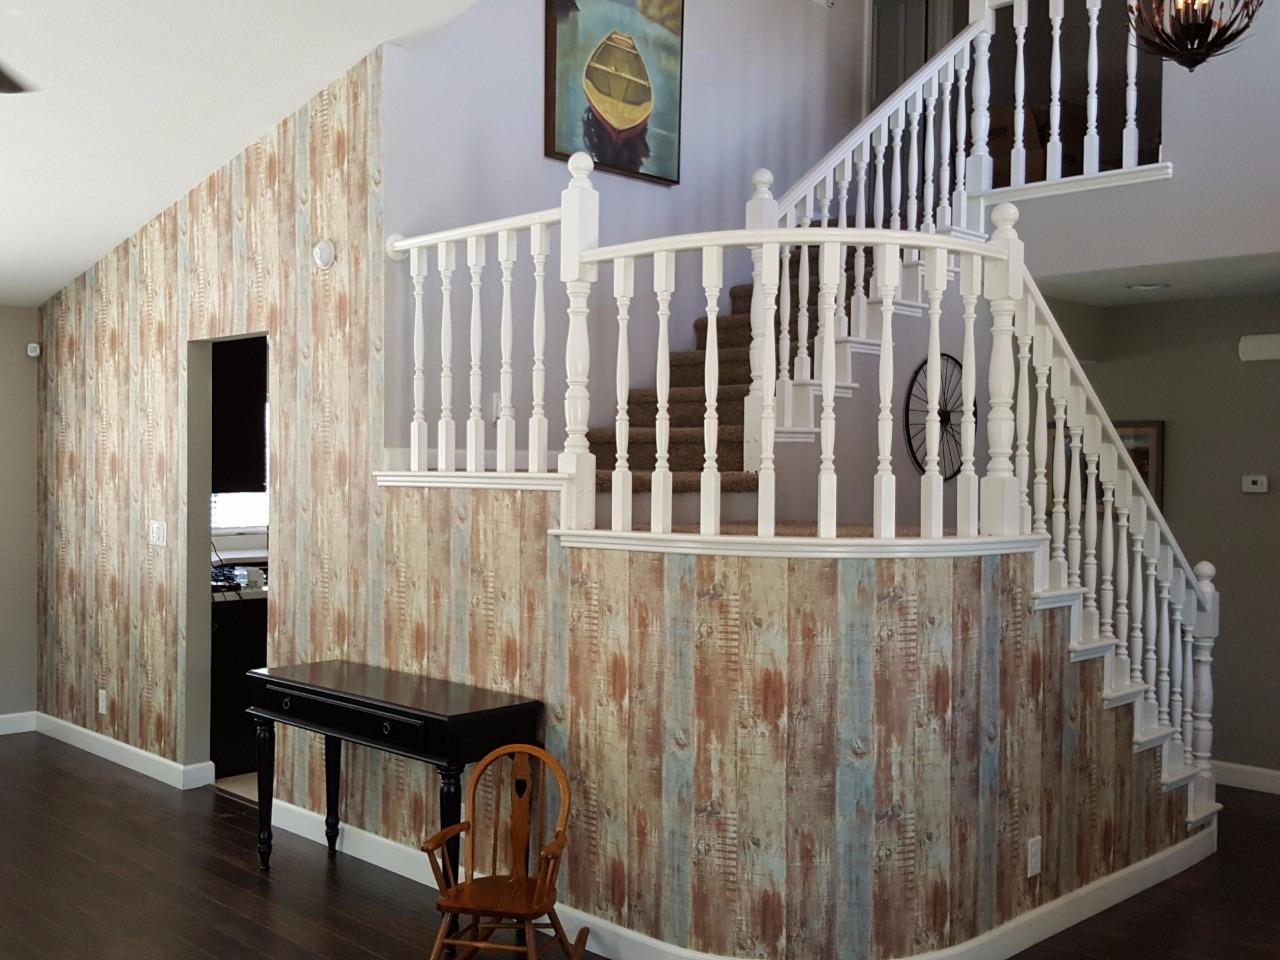 Las Vegas Angie's list, wallpaper hanger, Installation wallpaper, contractor, painting , Venetian plaster, summerlin,89144